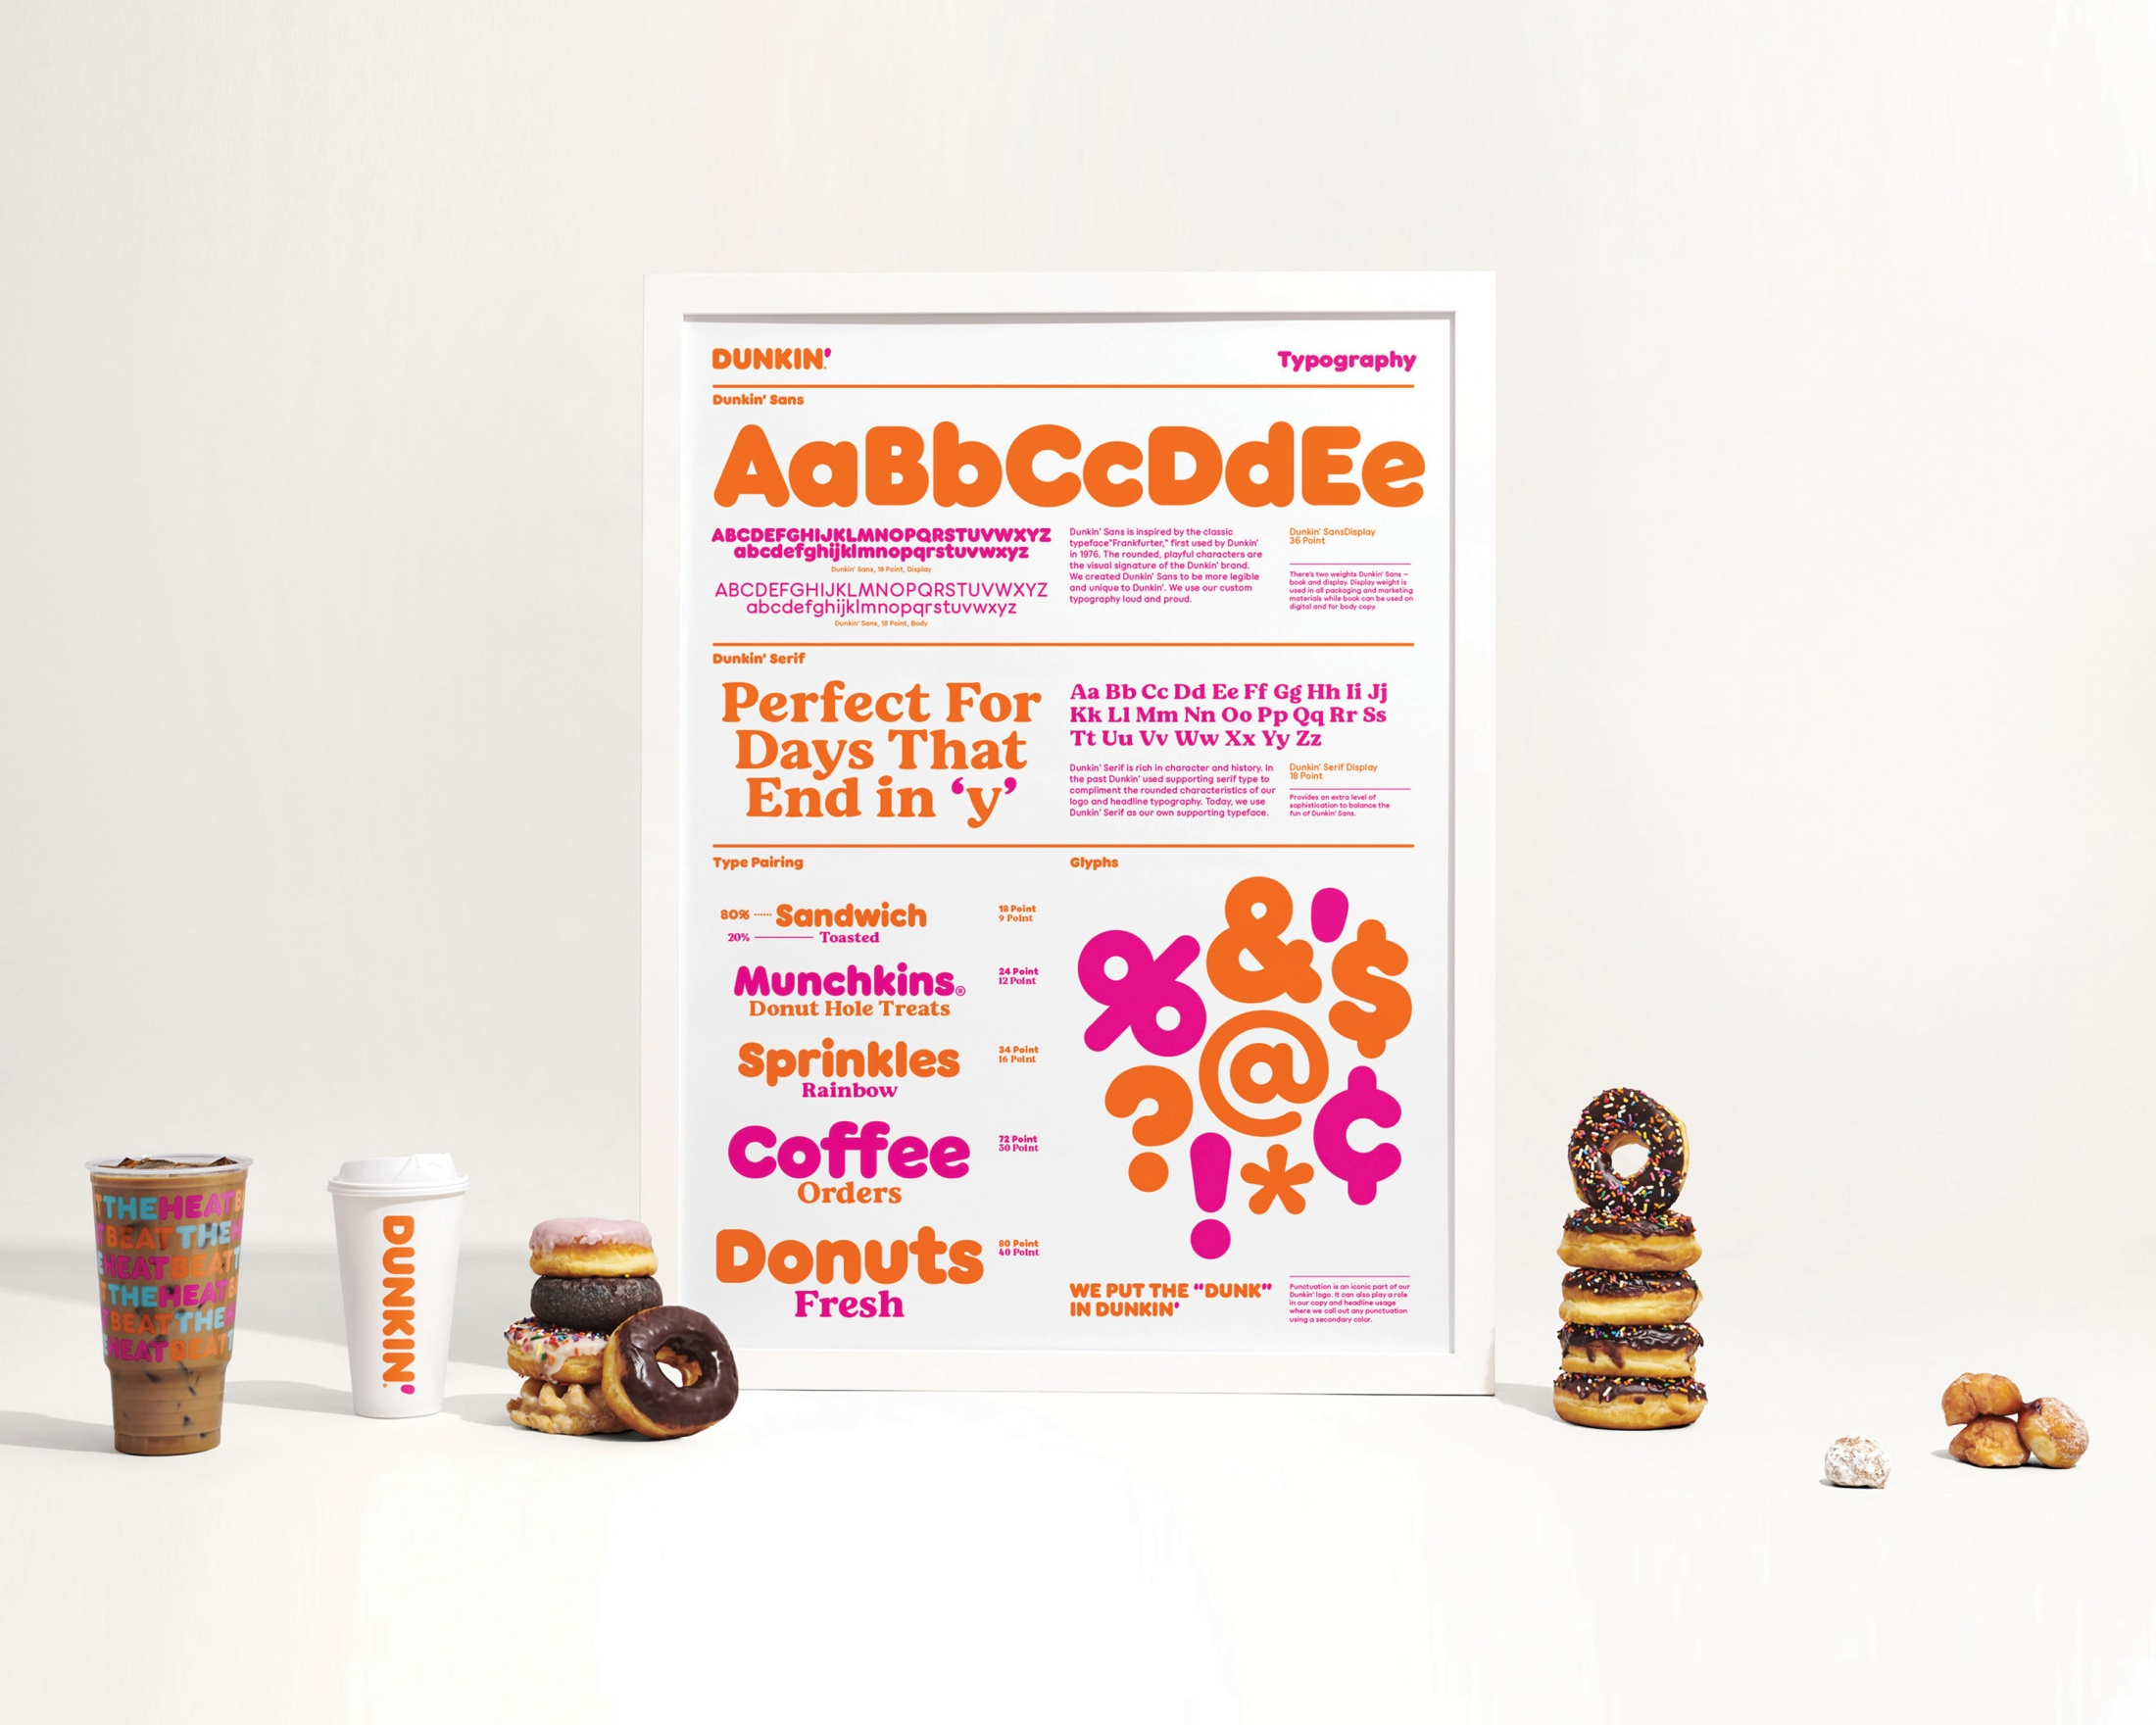 Image Media for Dunkin'